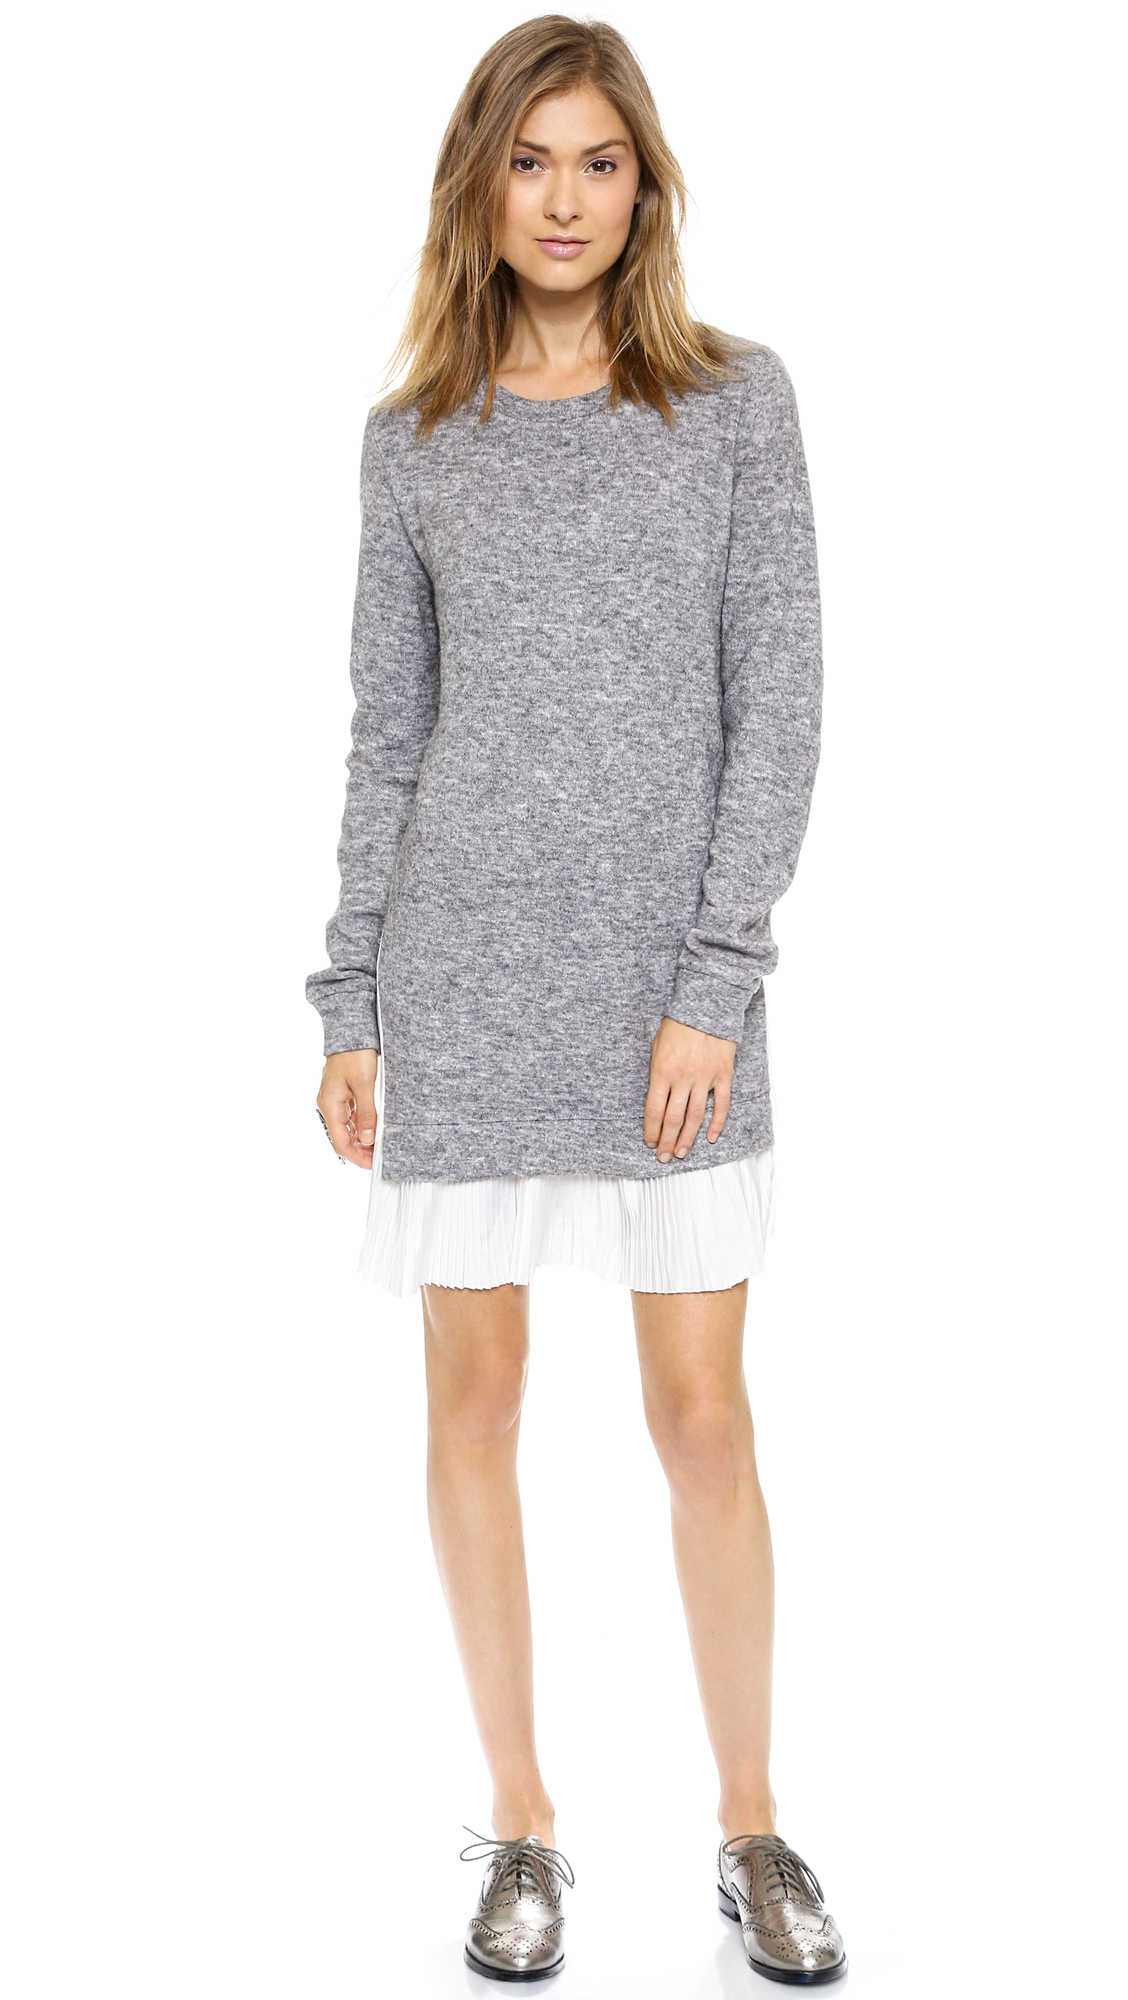 Clu clu too pleated sweater dress